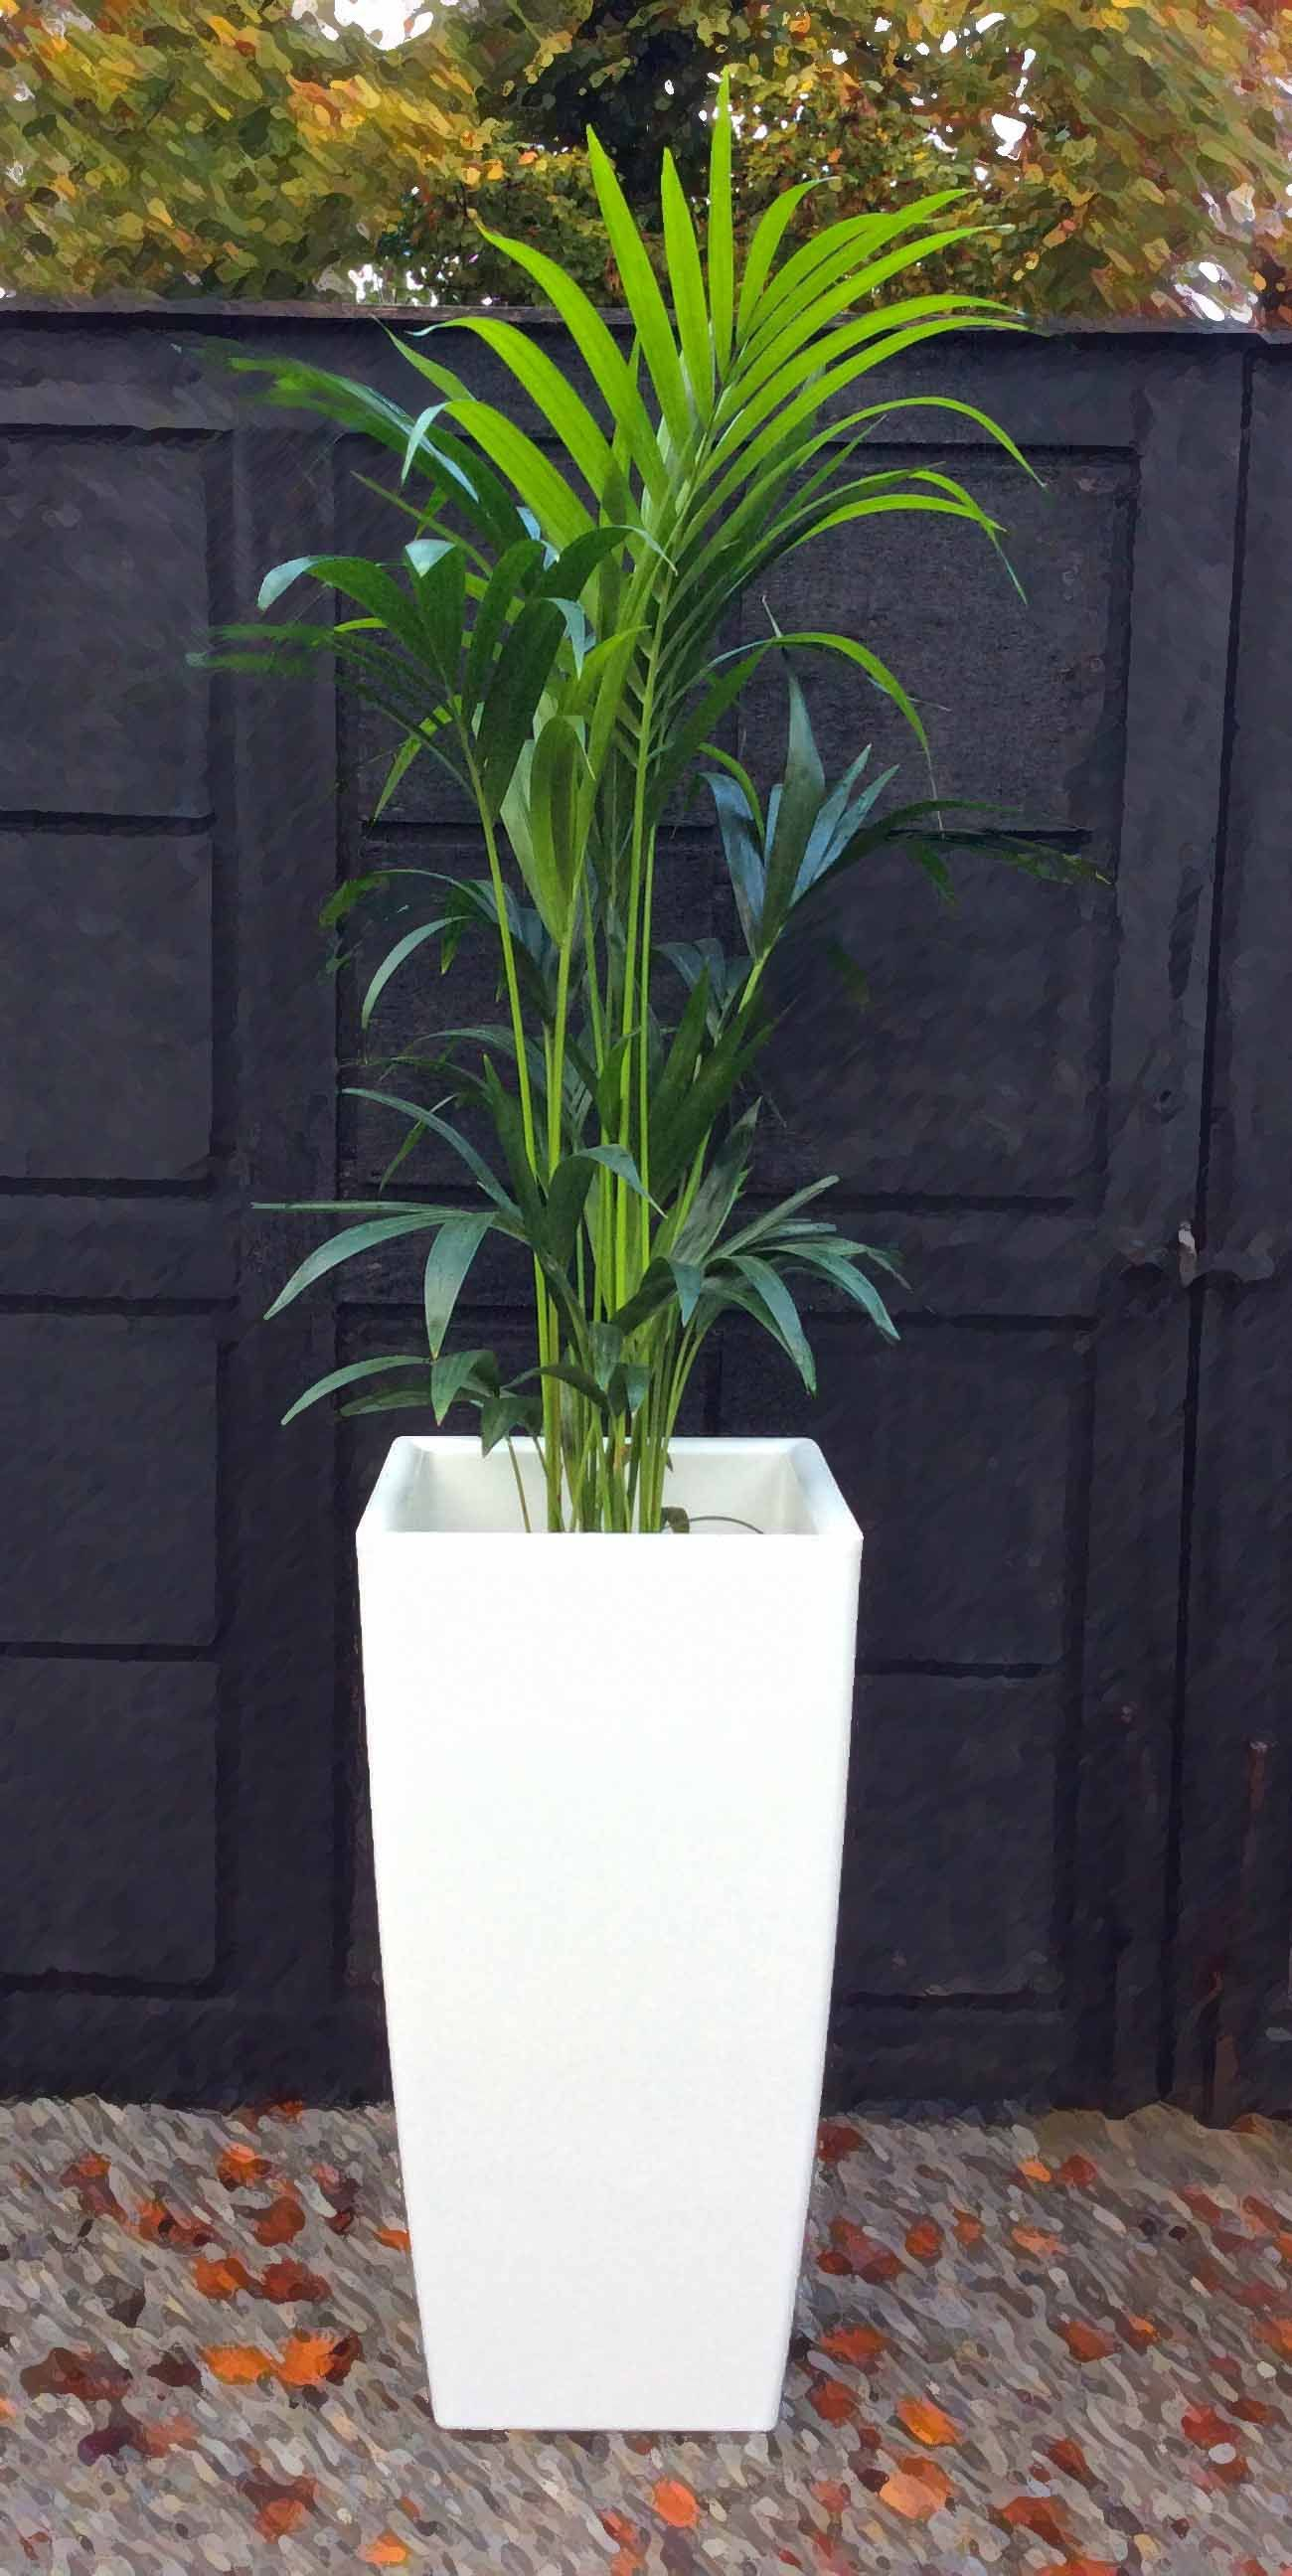 Kentia Palm available from Plant Design http//plantdesign